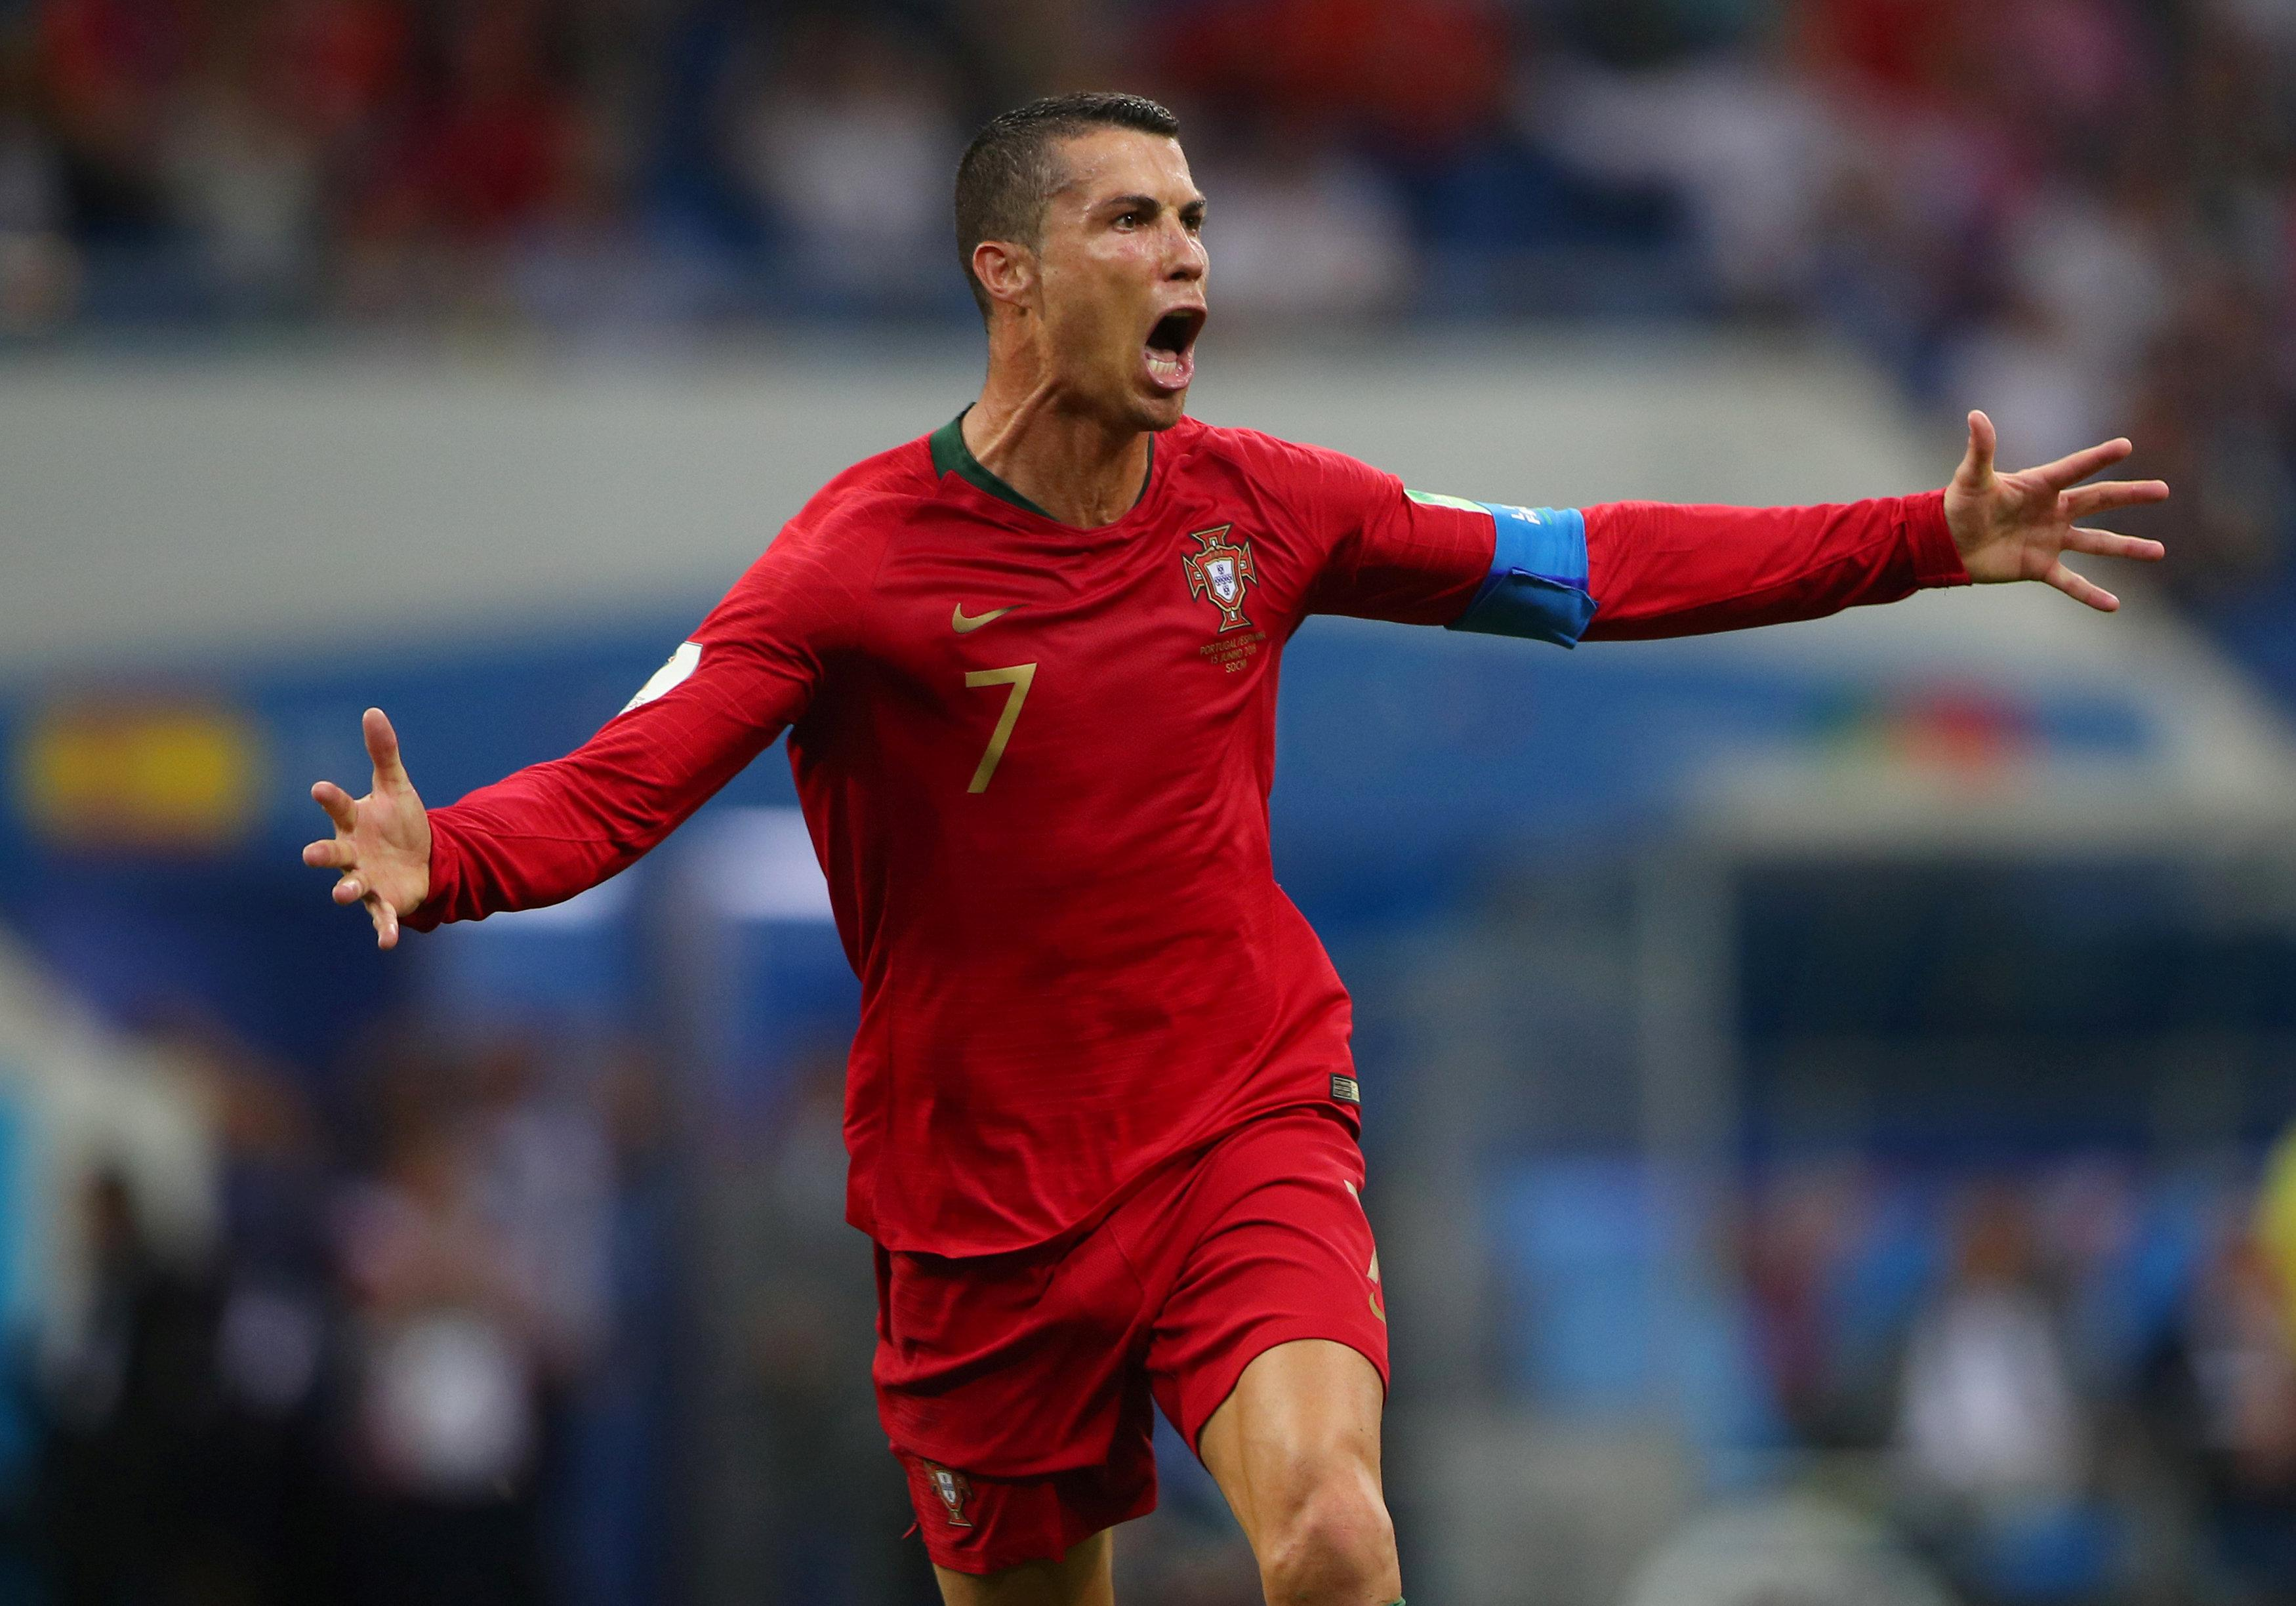 This is Ronaldo's world and we're just livin' in it